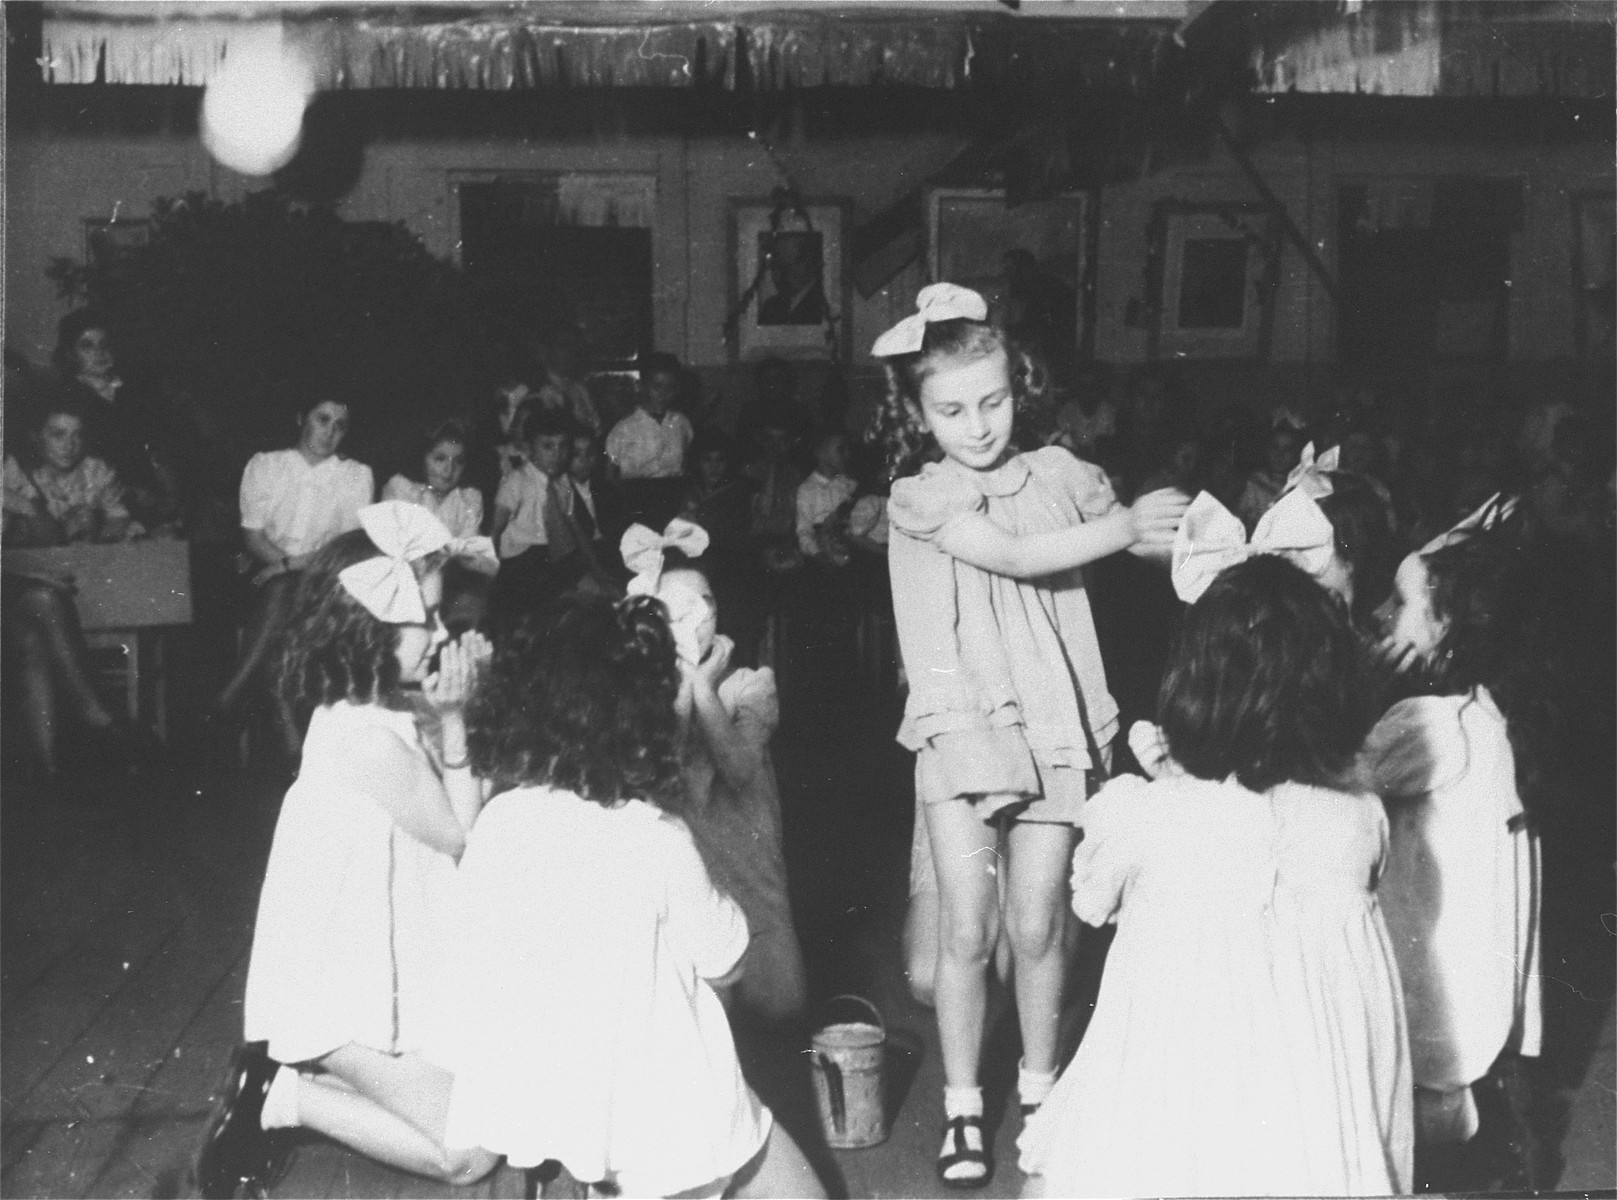 Children perform a dance during a celebration in the Zeilsheim displaced persons' camp.